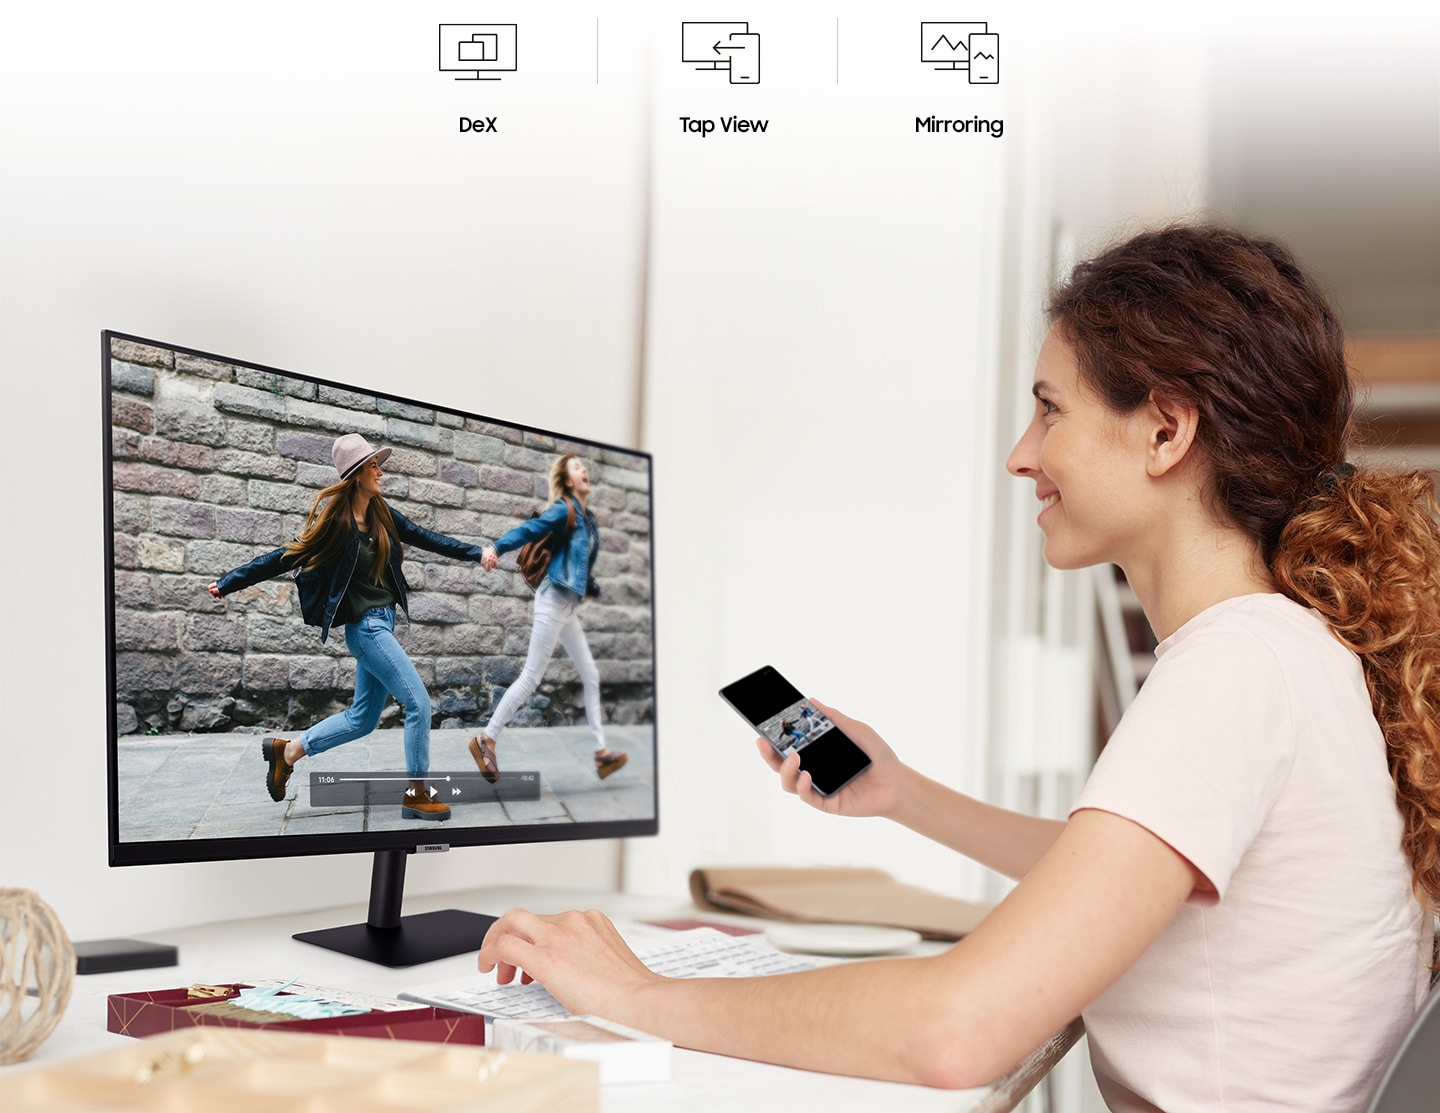 A man connects a smartphone to his monitor using wireless DeX. A smiling woman mirrors videos from her phone to her monitor.